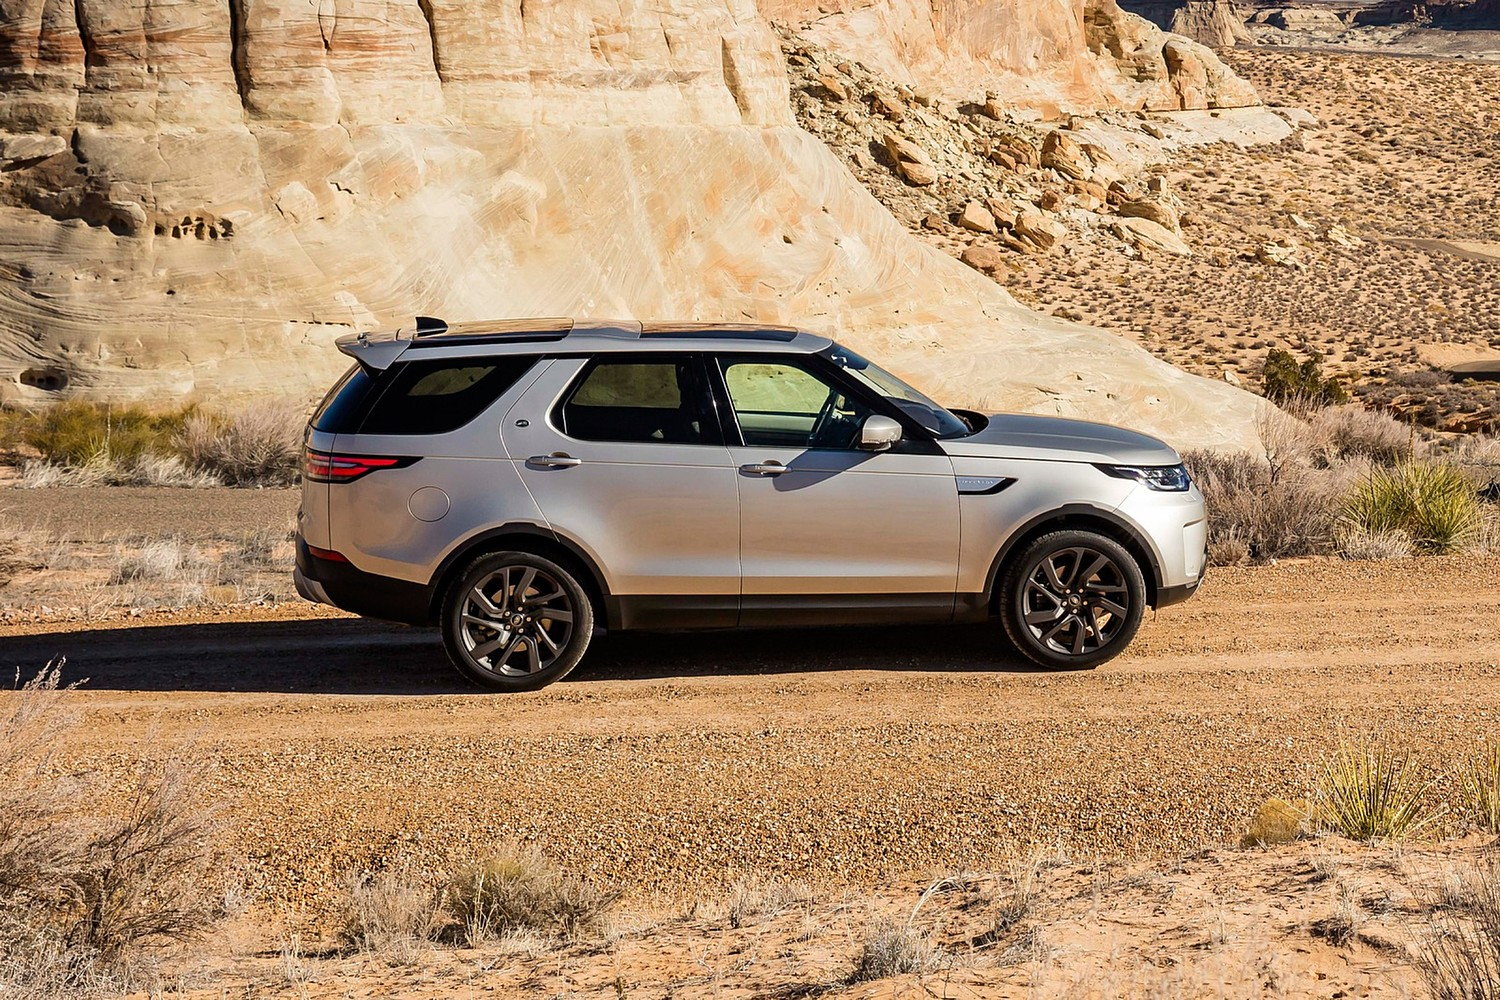 2018 Land Rover Discovery HSE Td6 4dr SUV Profile Shown